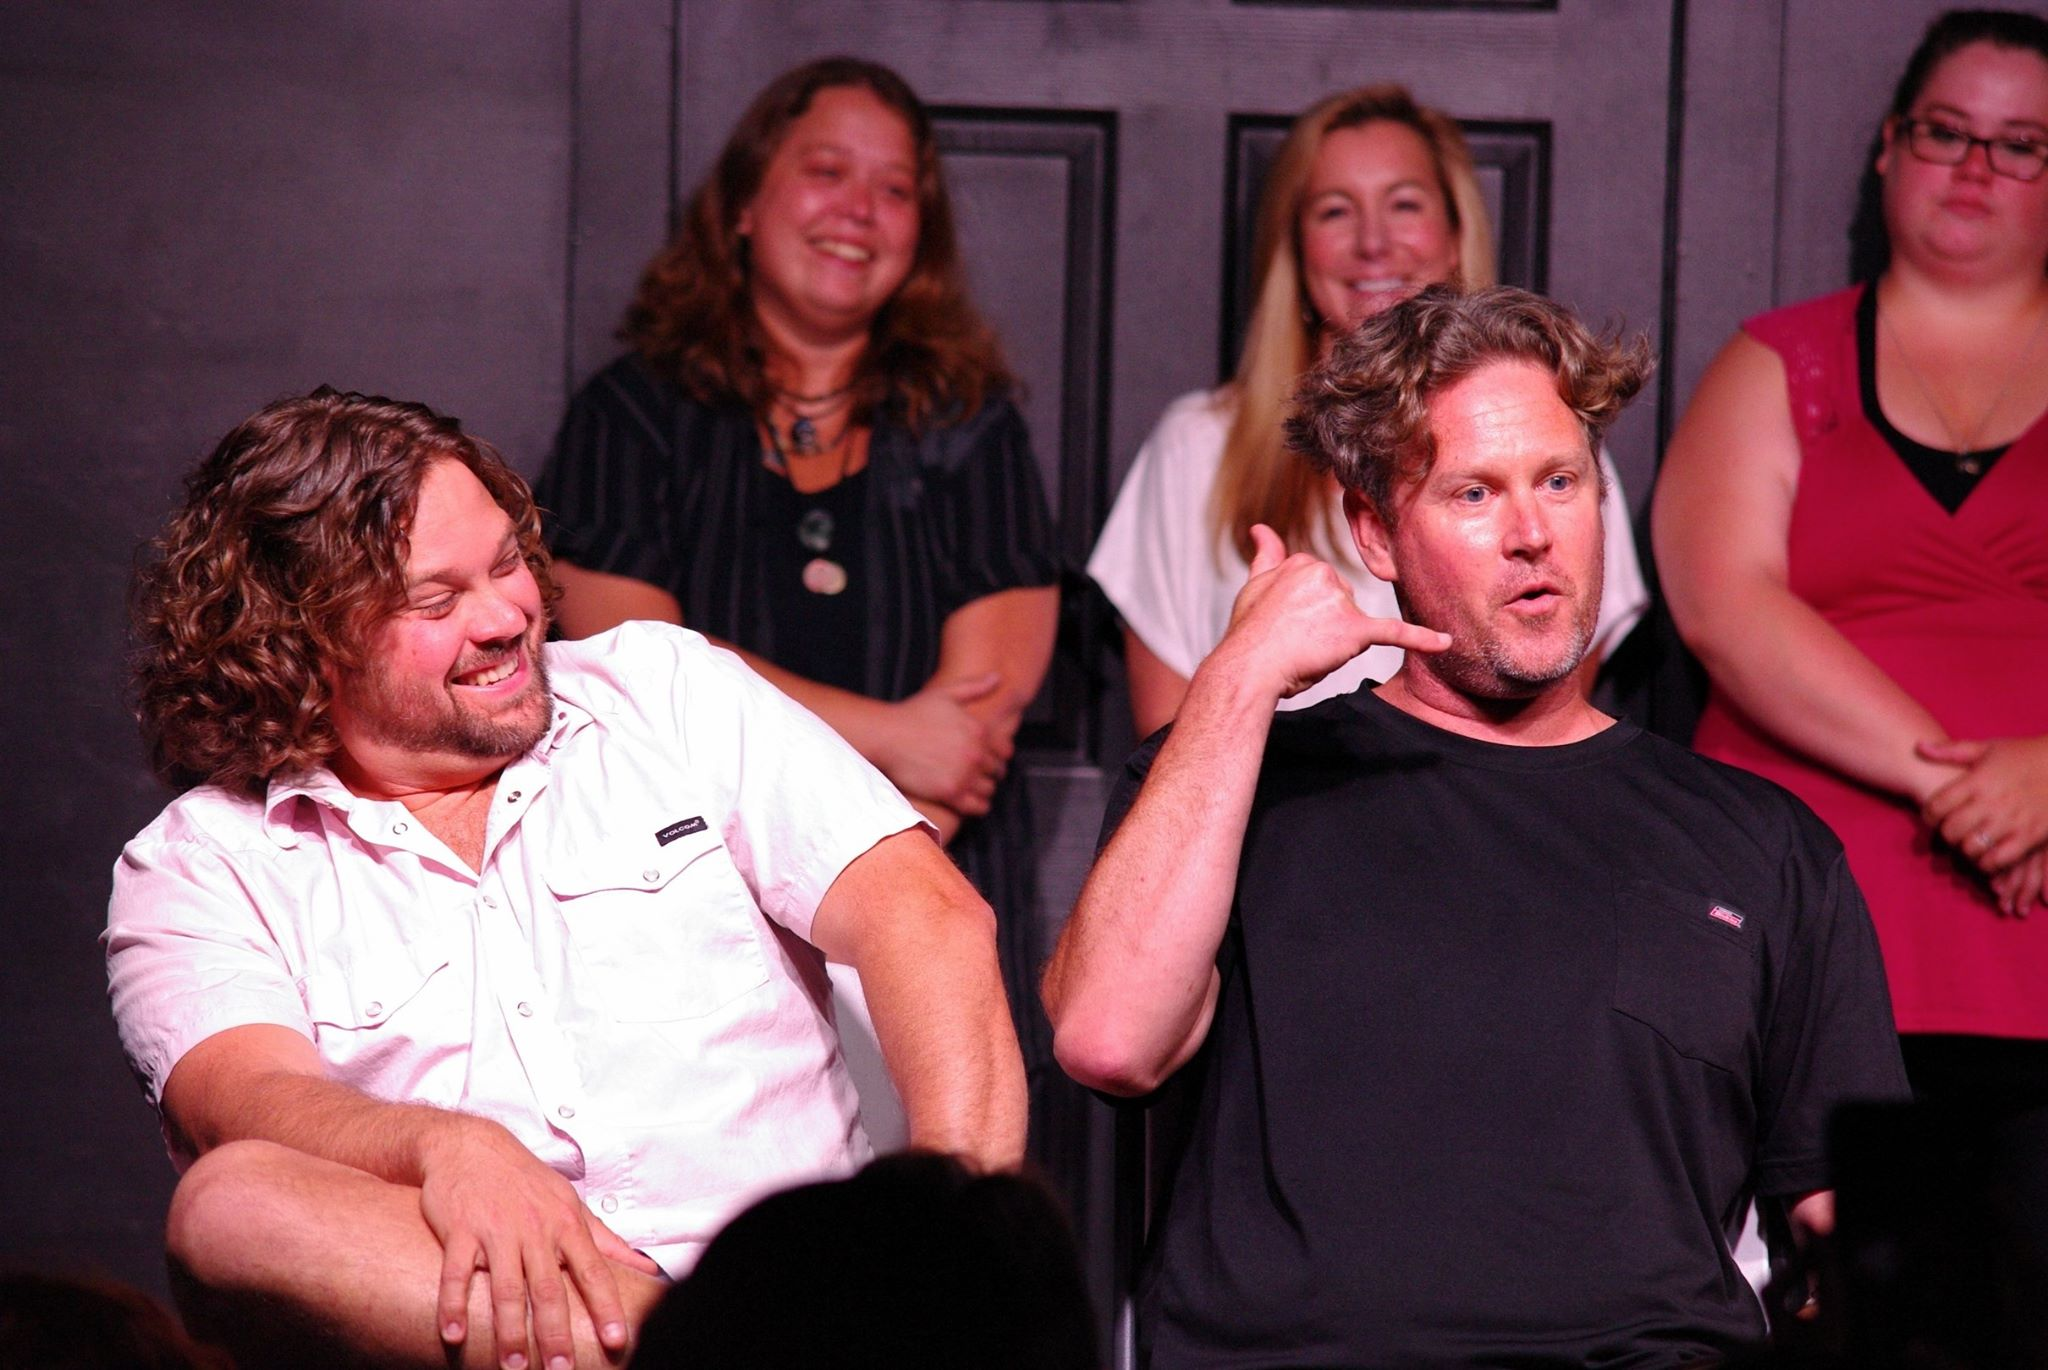 """"""" Push Comedy Theater has def channeled my energy and opened up my thinking."""" John Wharton"""